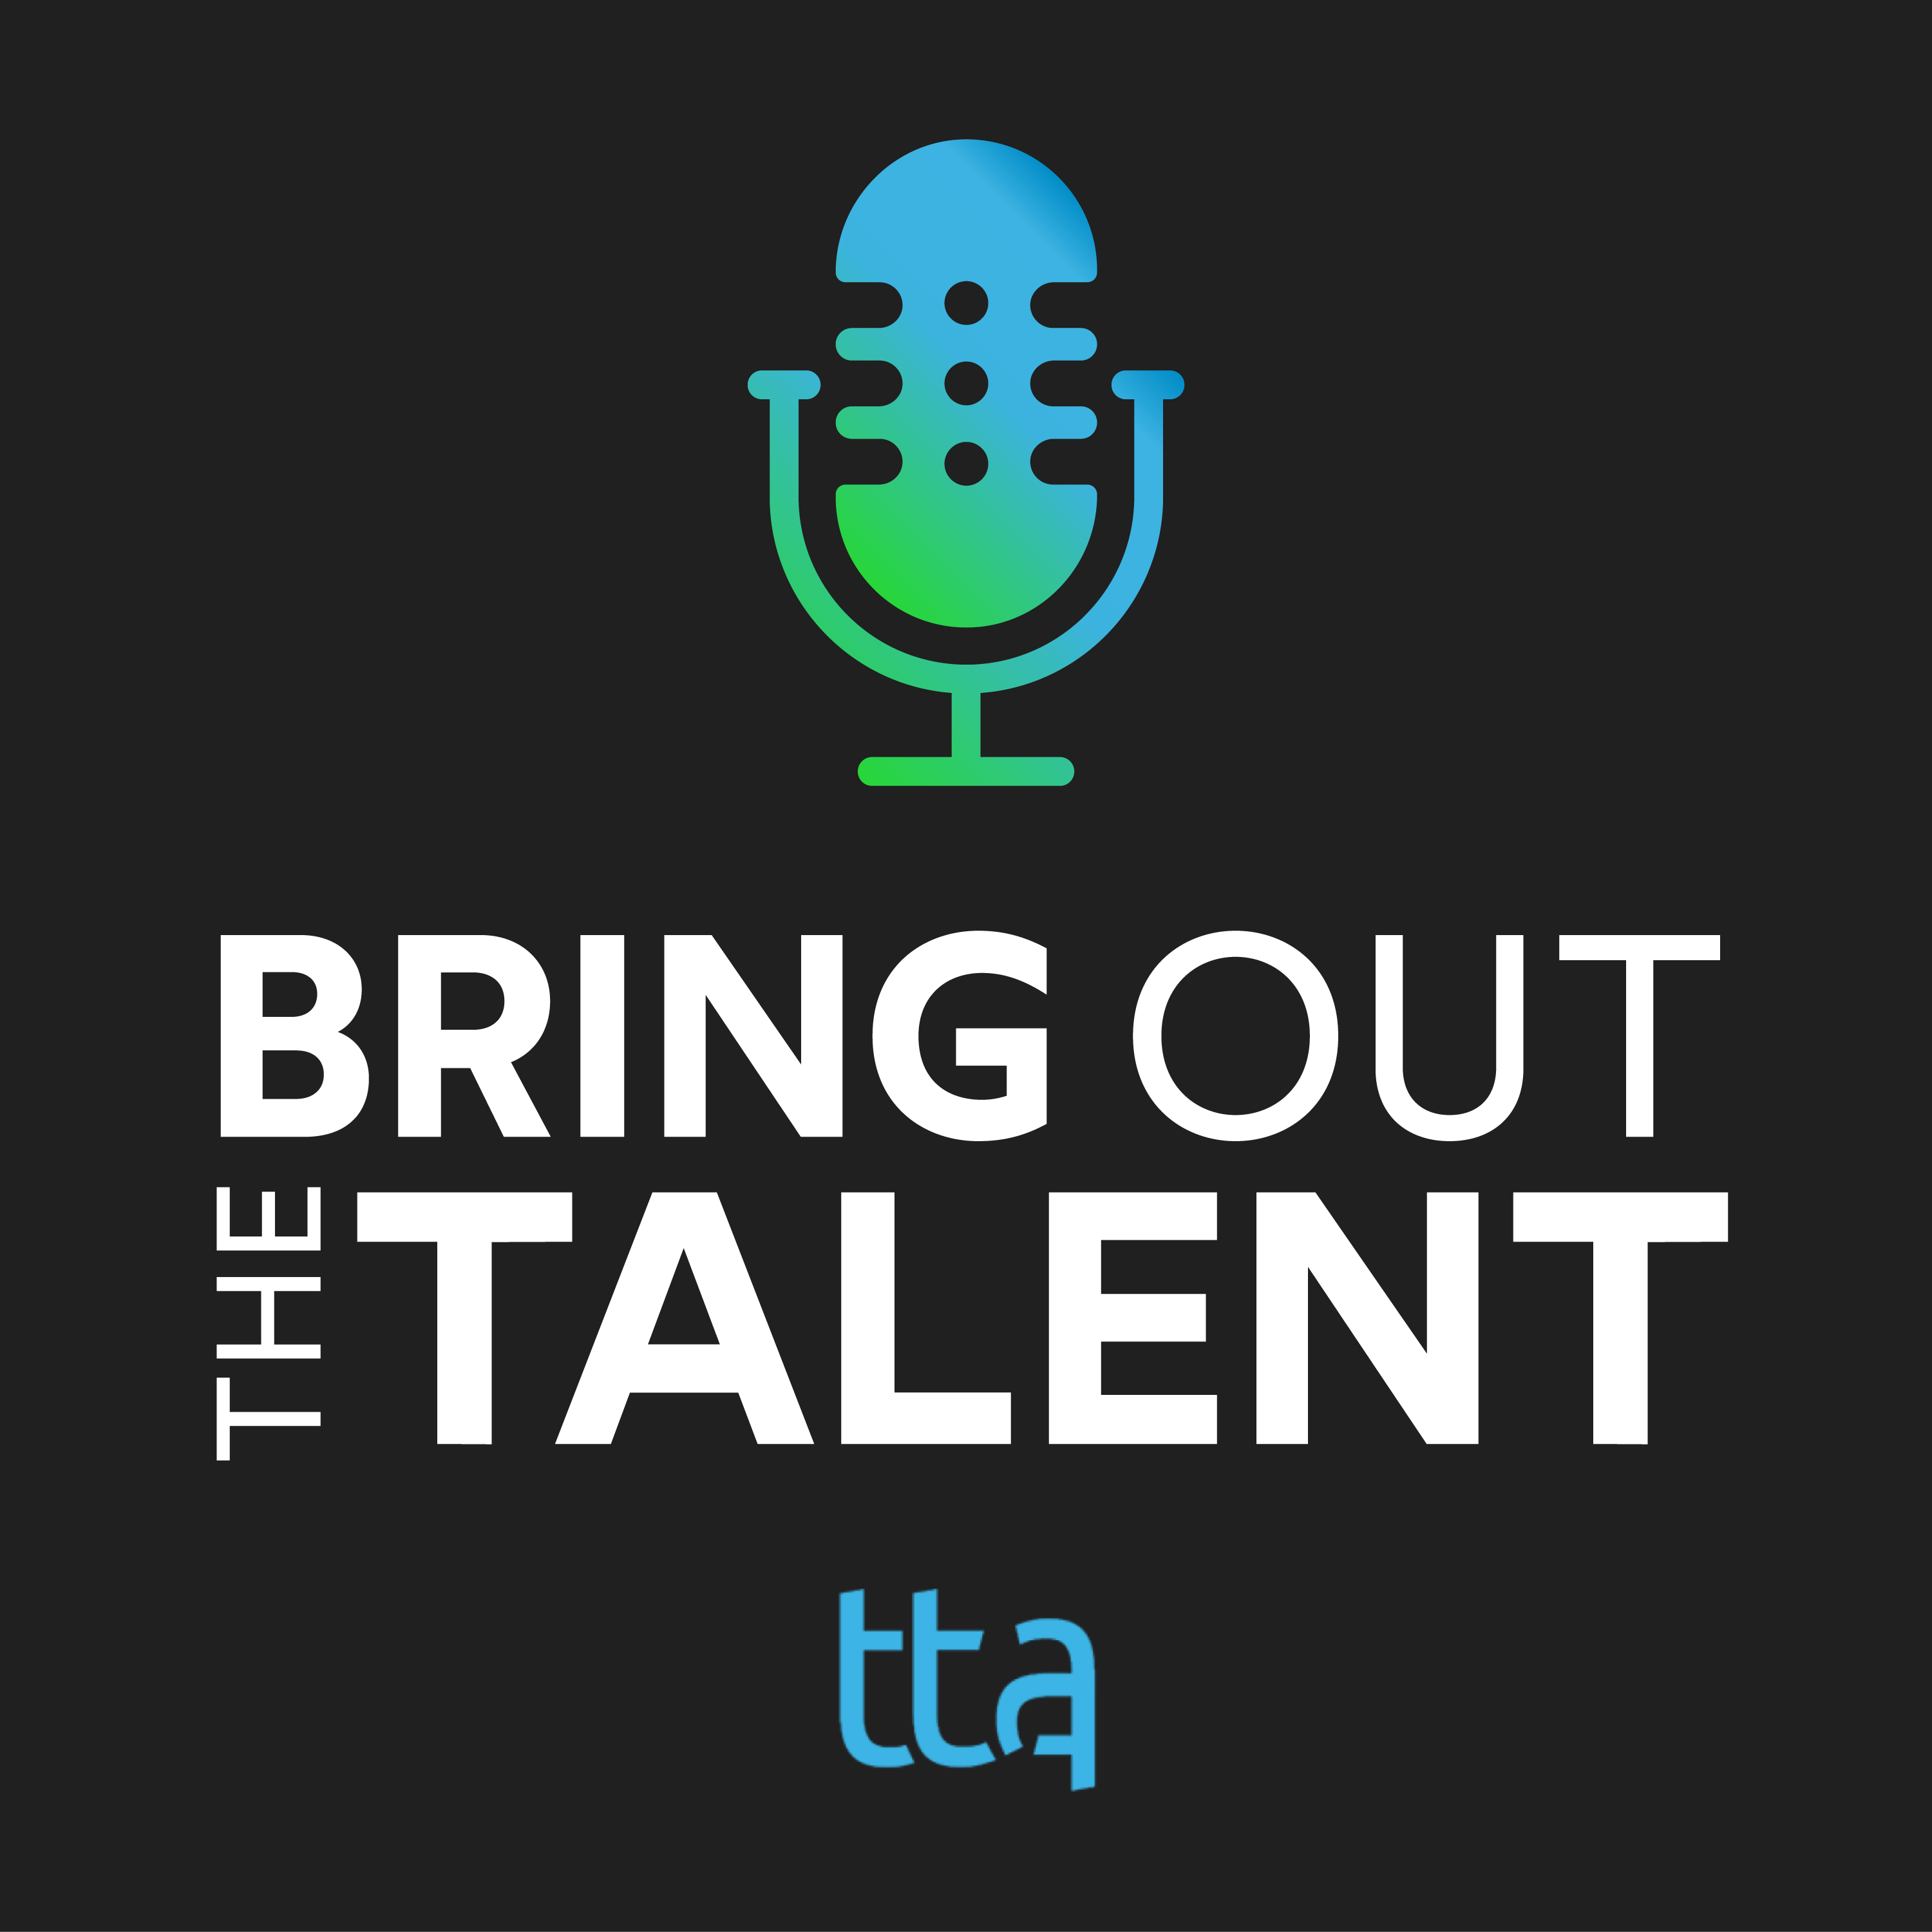 Bring out the talent